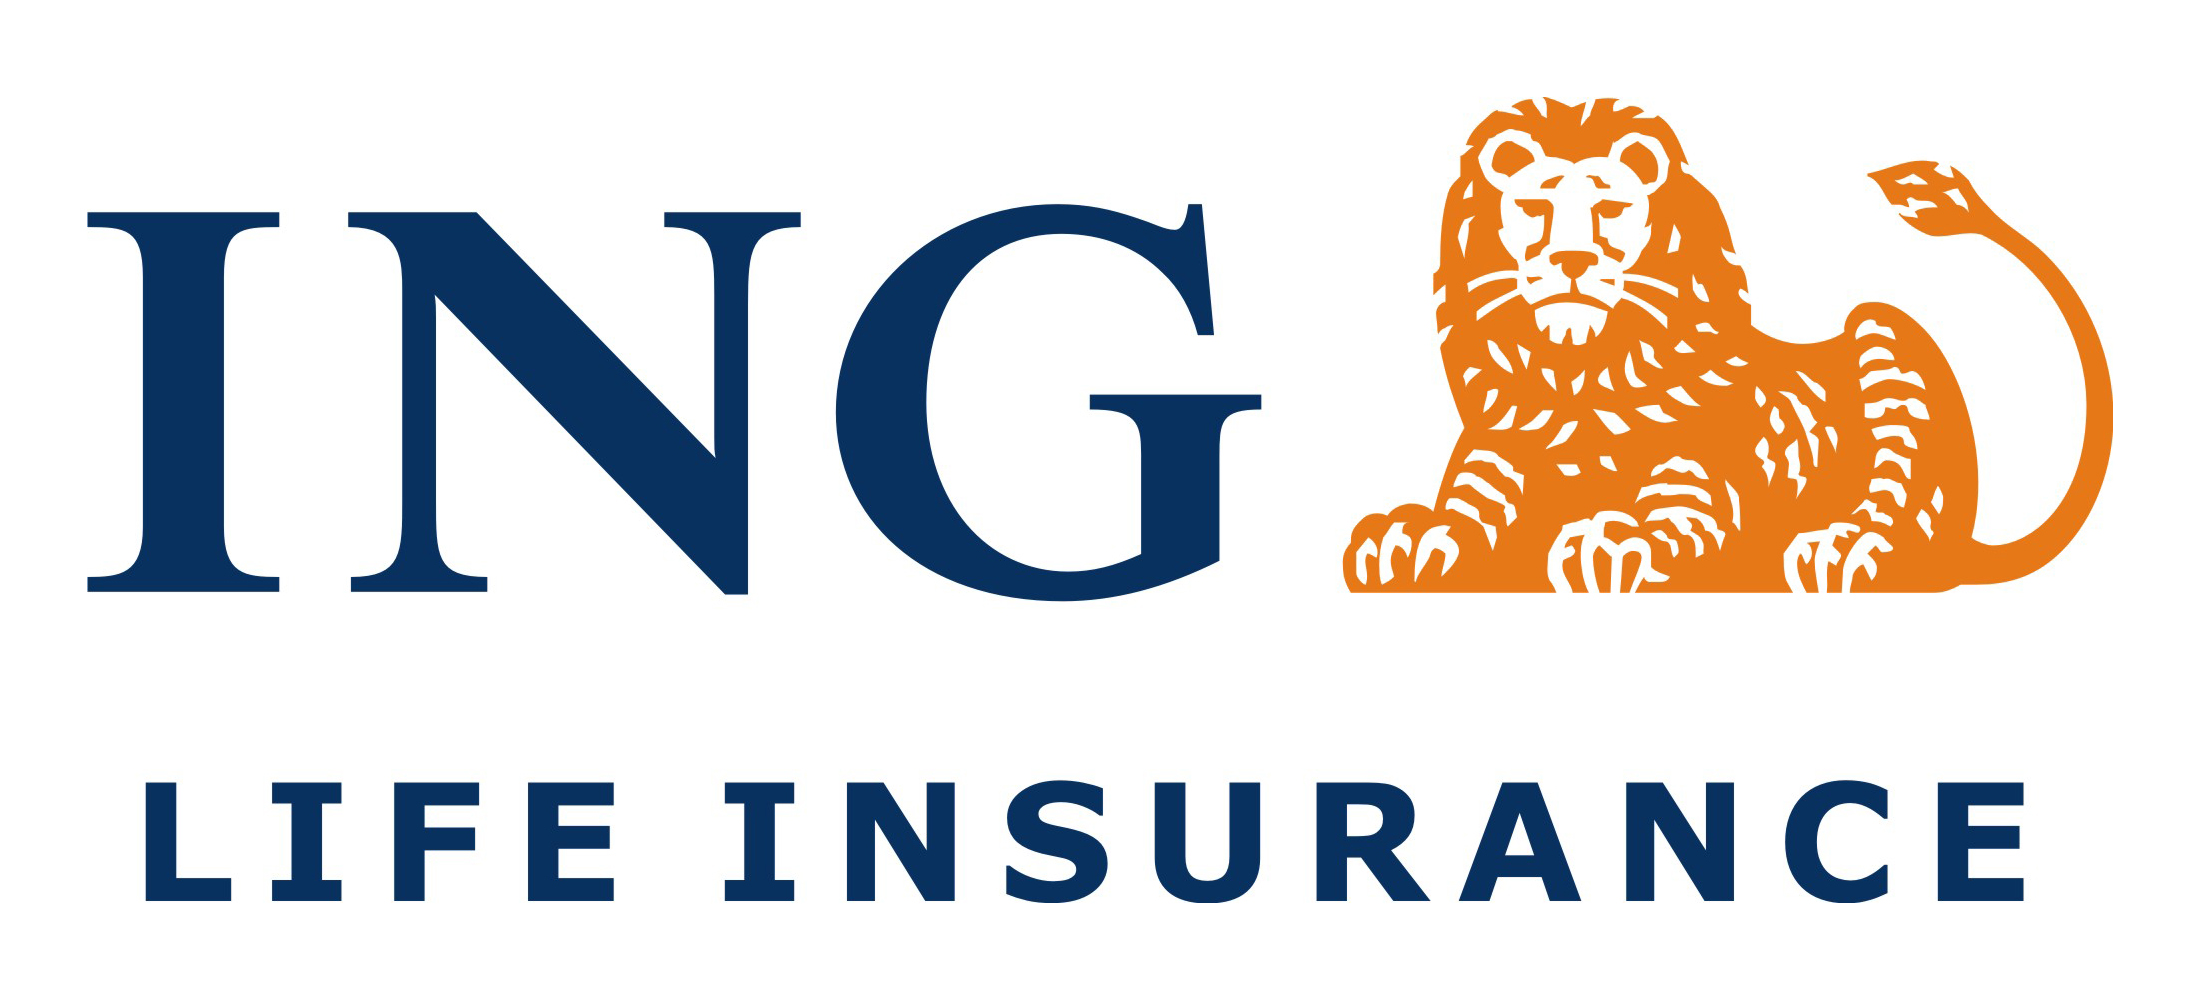 Insurance Company With Lion Logo